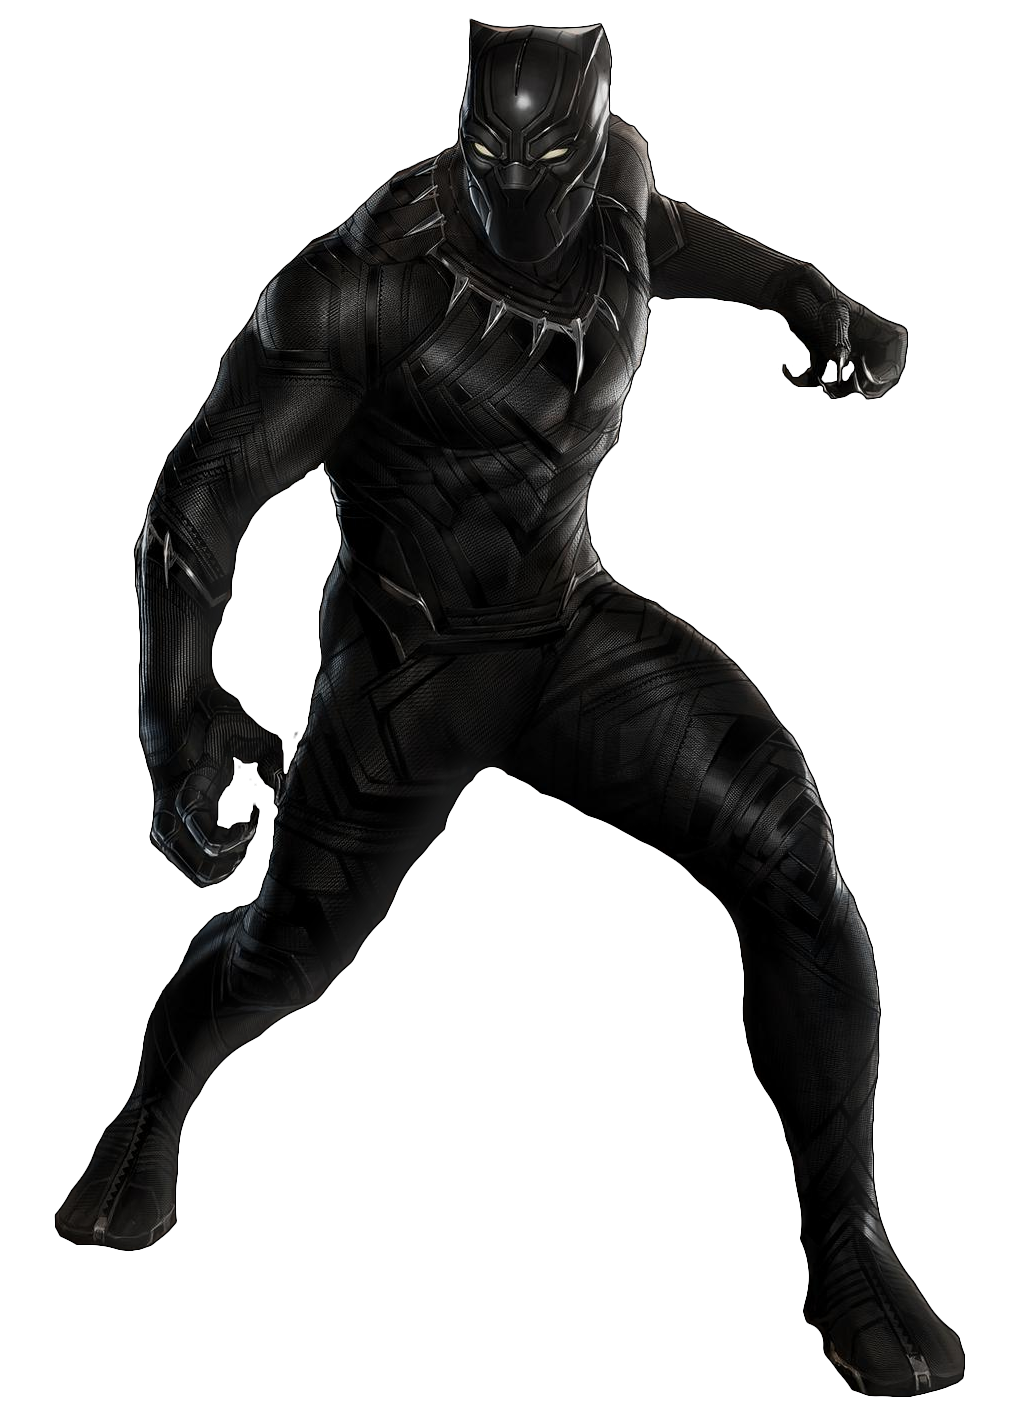 black panther marvel png